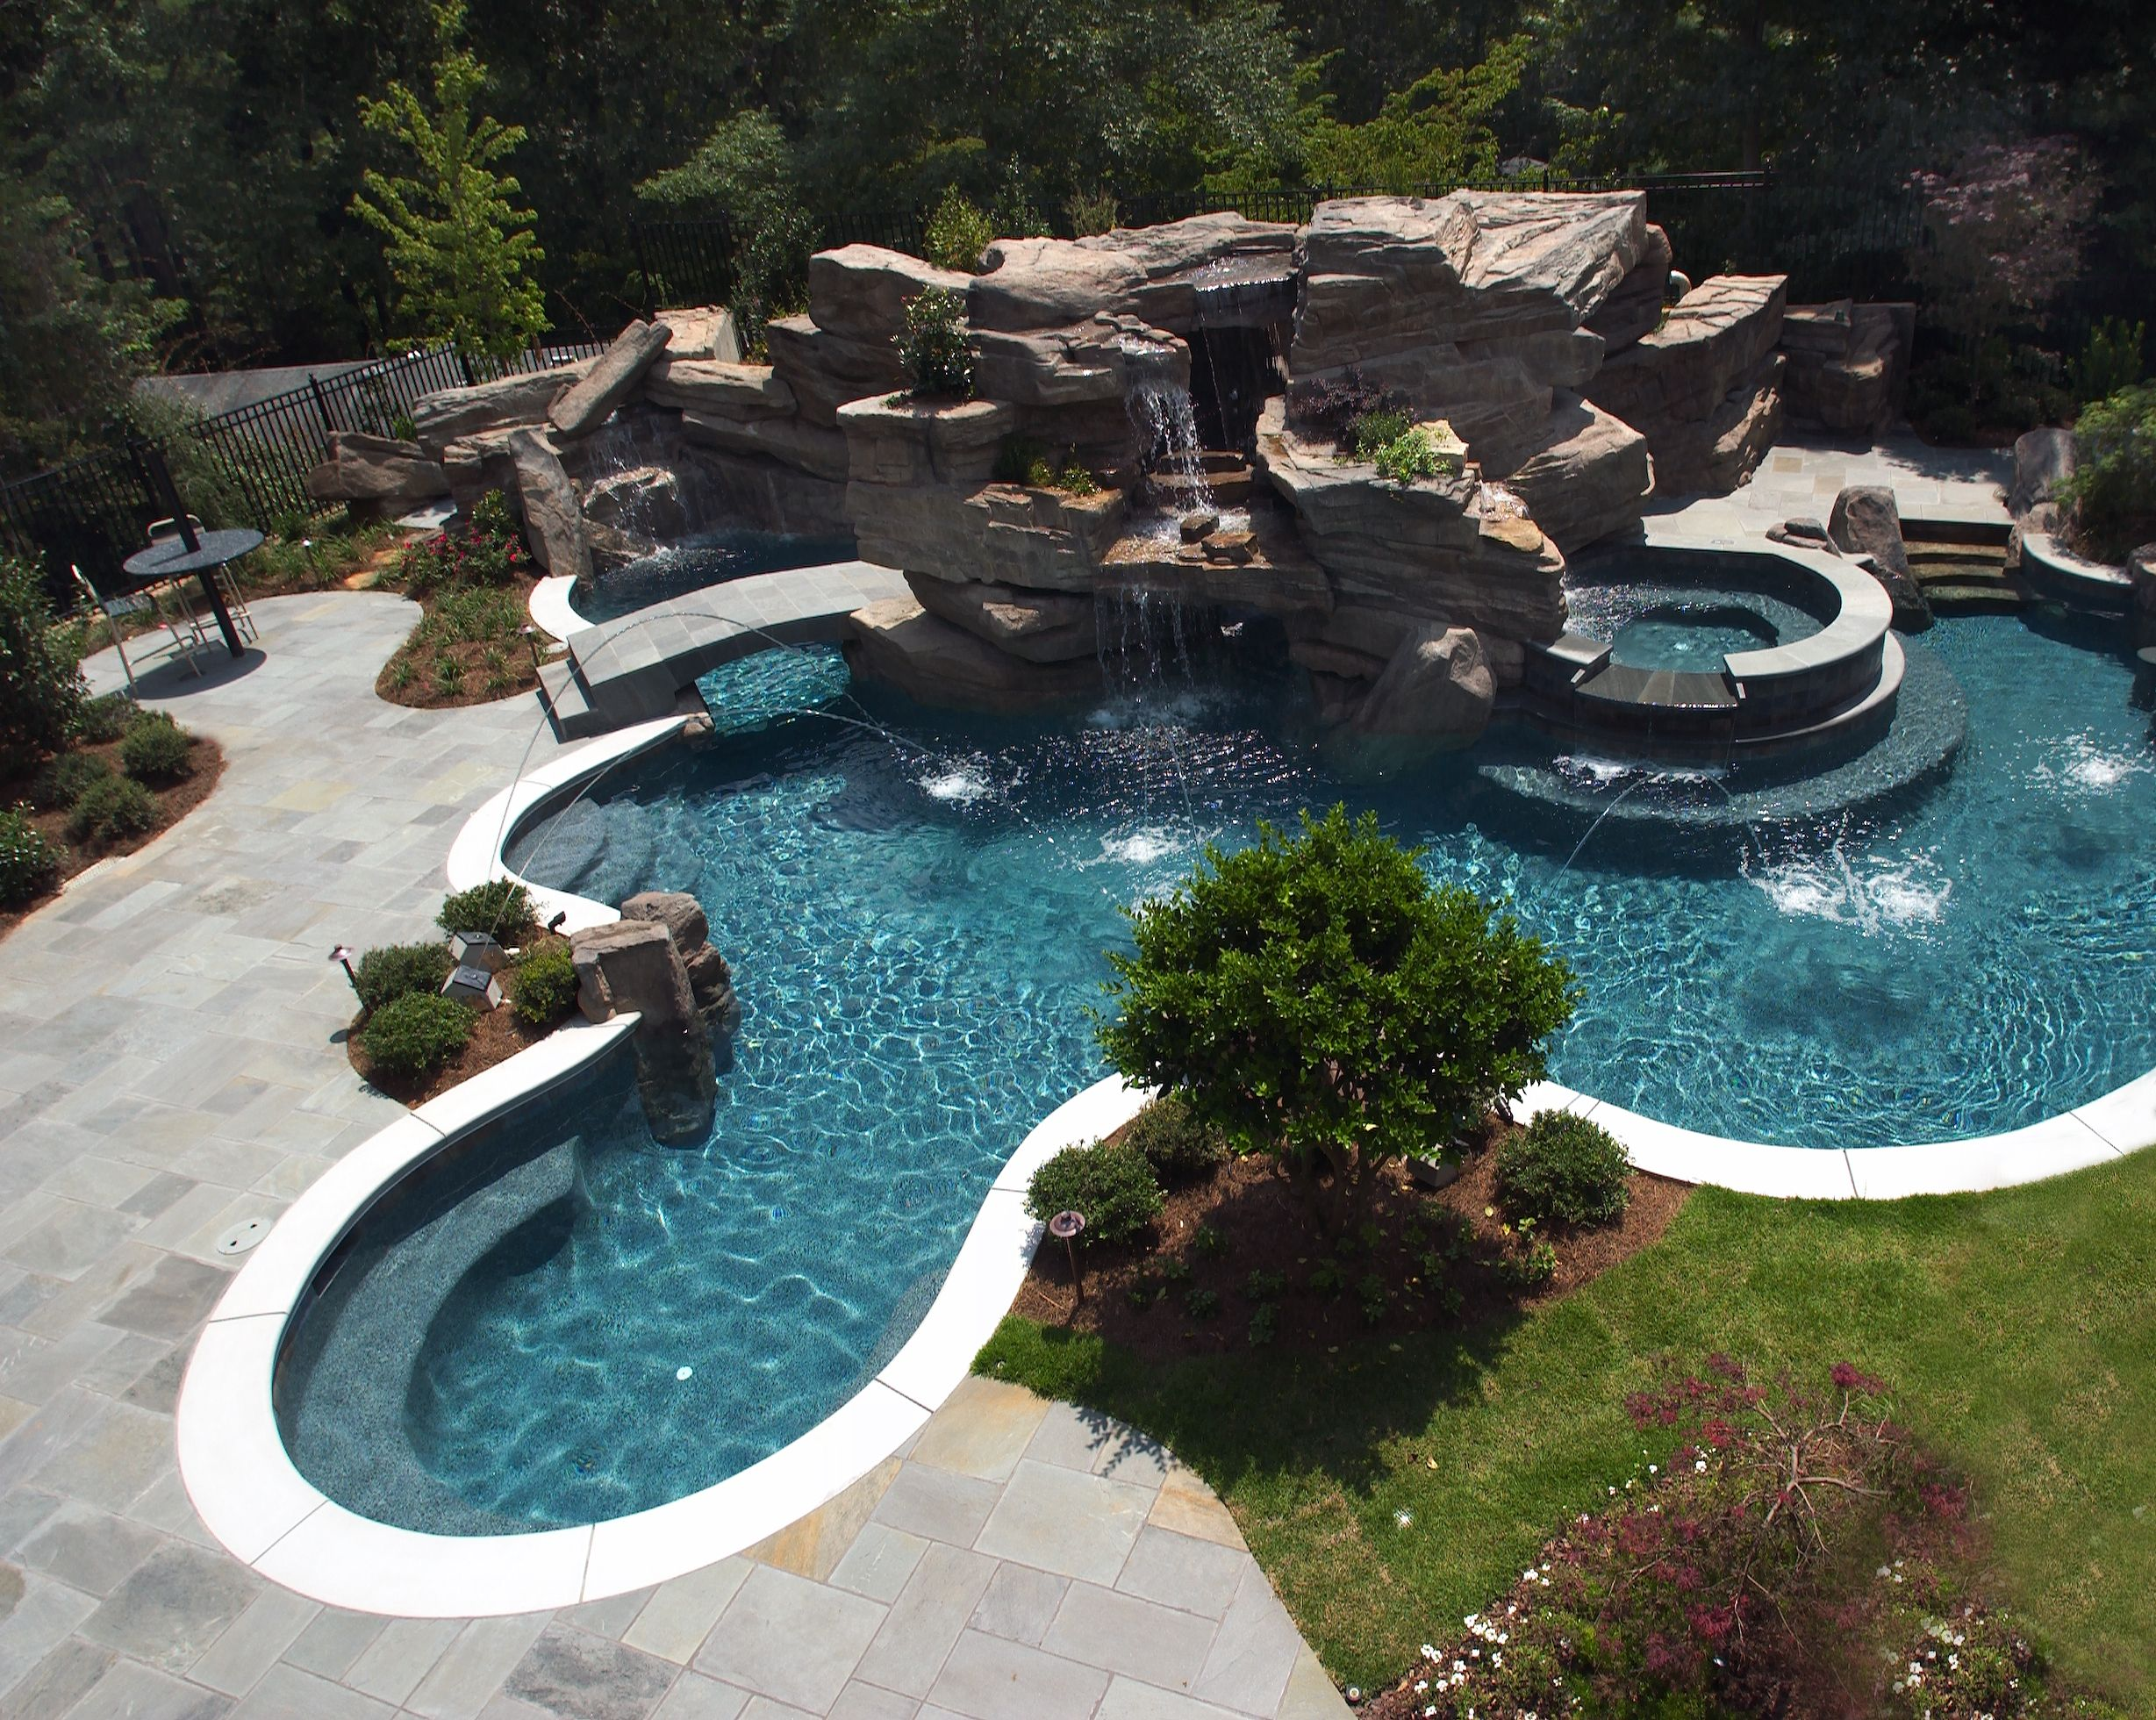 Luxury Swimming Pools With Waterfalls elaborate swimming pool featuring large grotto, waterfall and tube